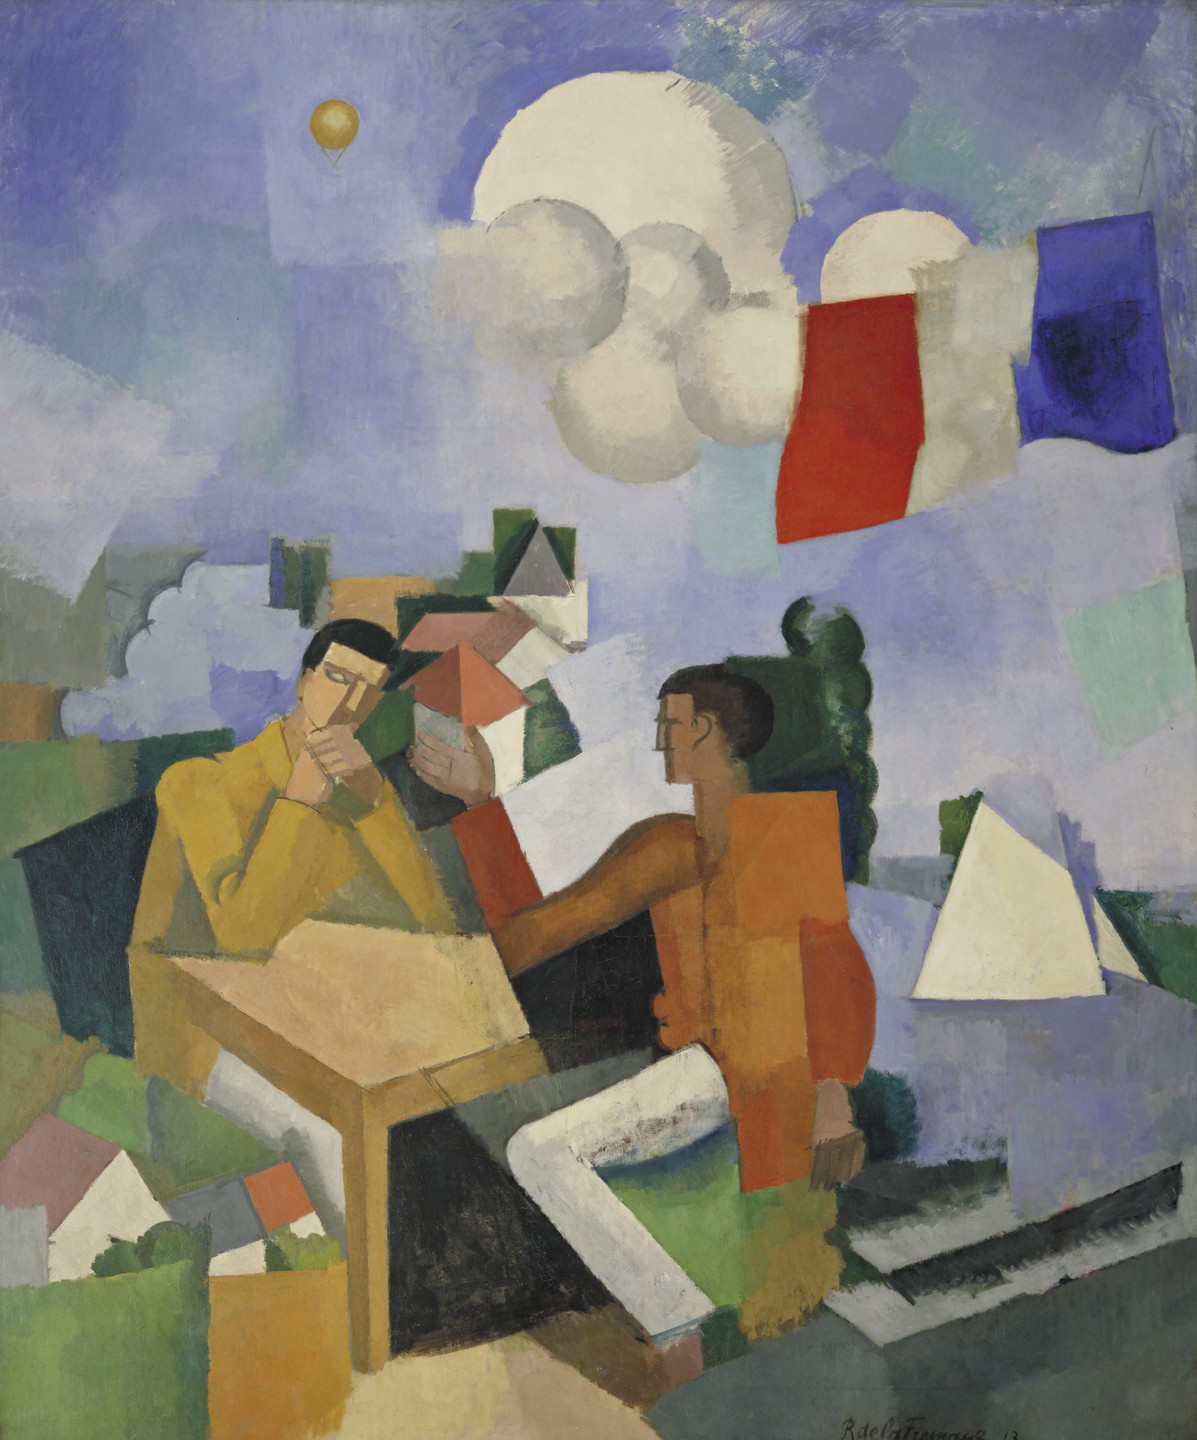 Roger de La Fresnaye. The Conquest of the Air. 1913